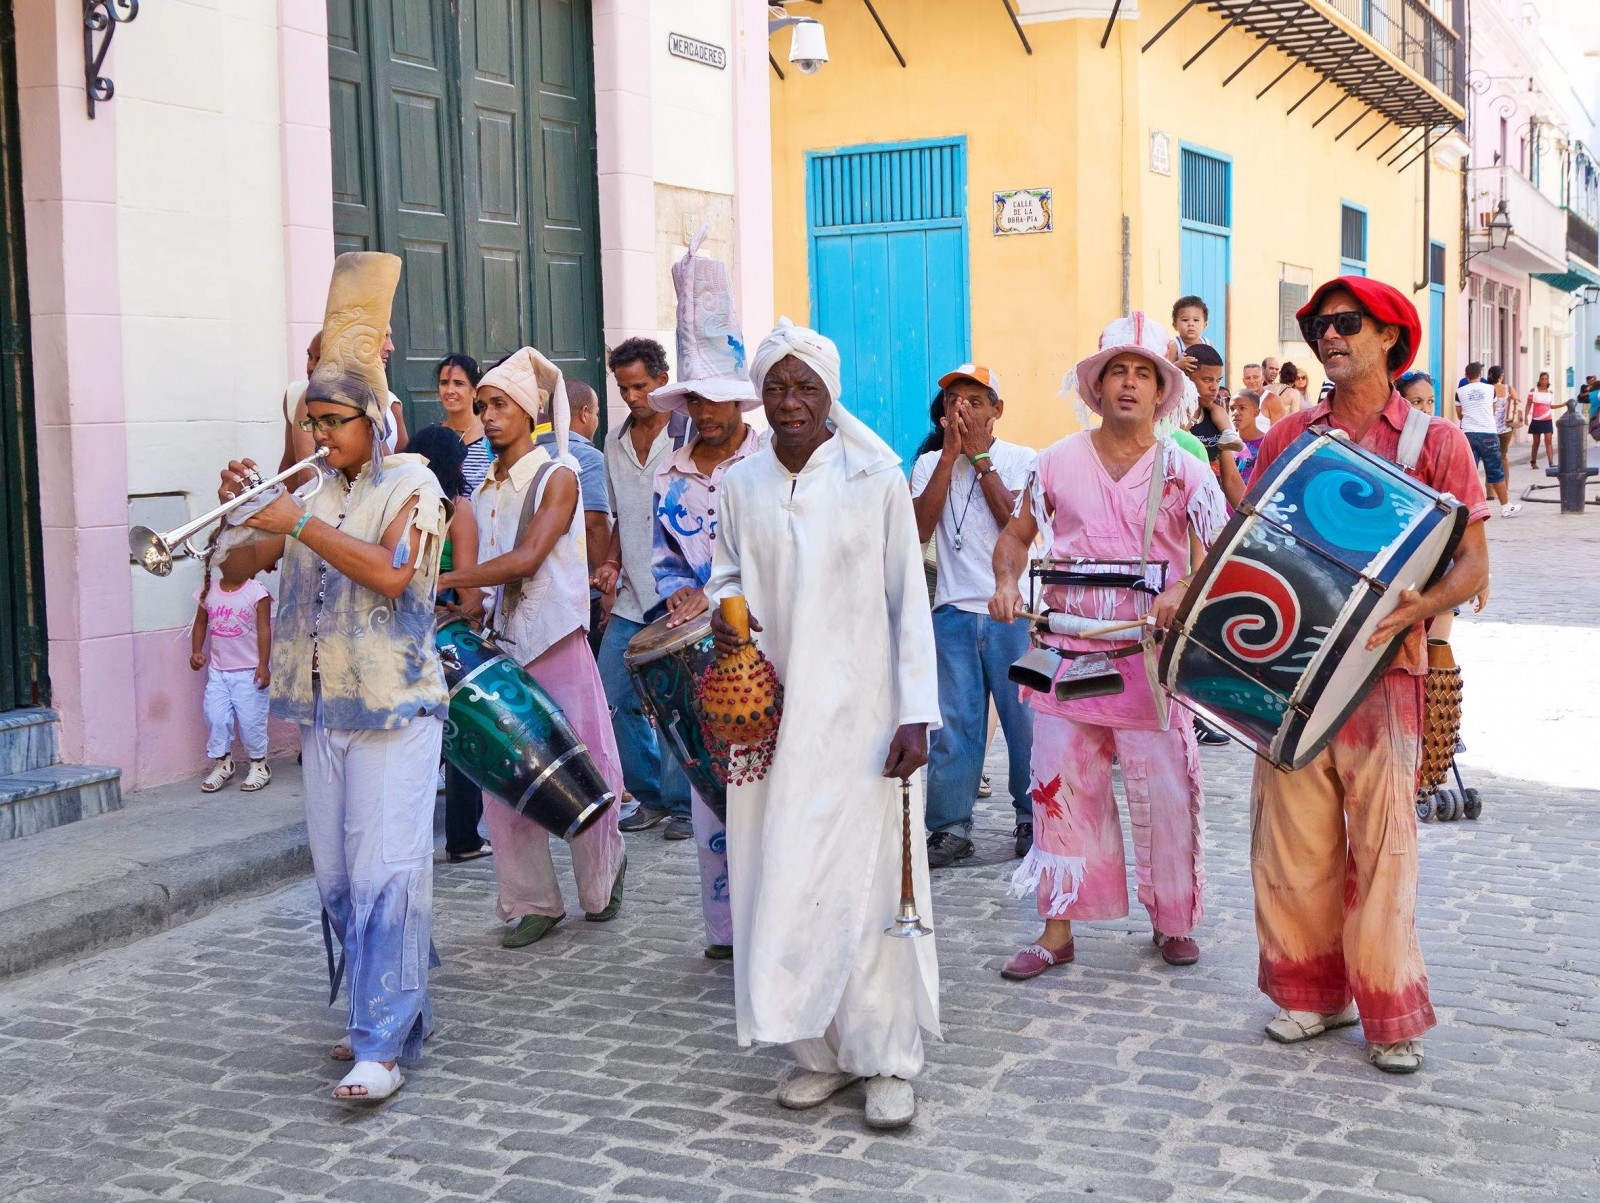 Santeria is one of the lesser known jewels of offbeat Havana